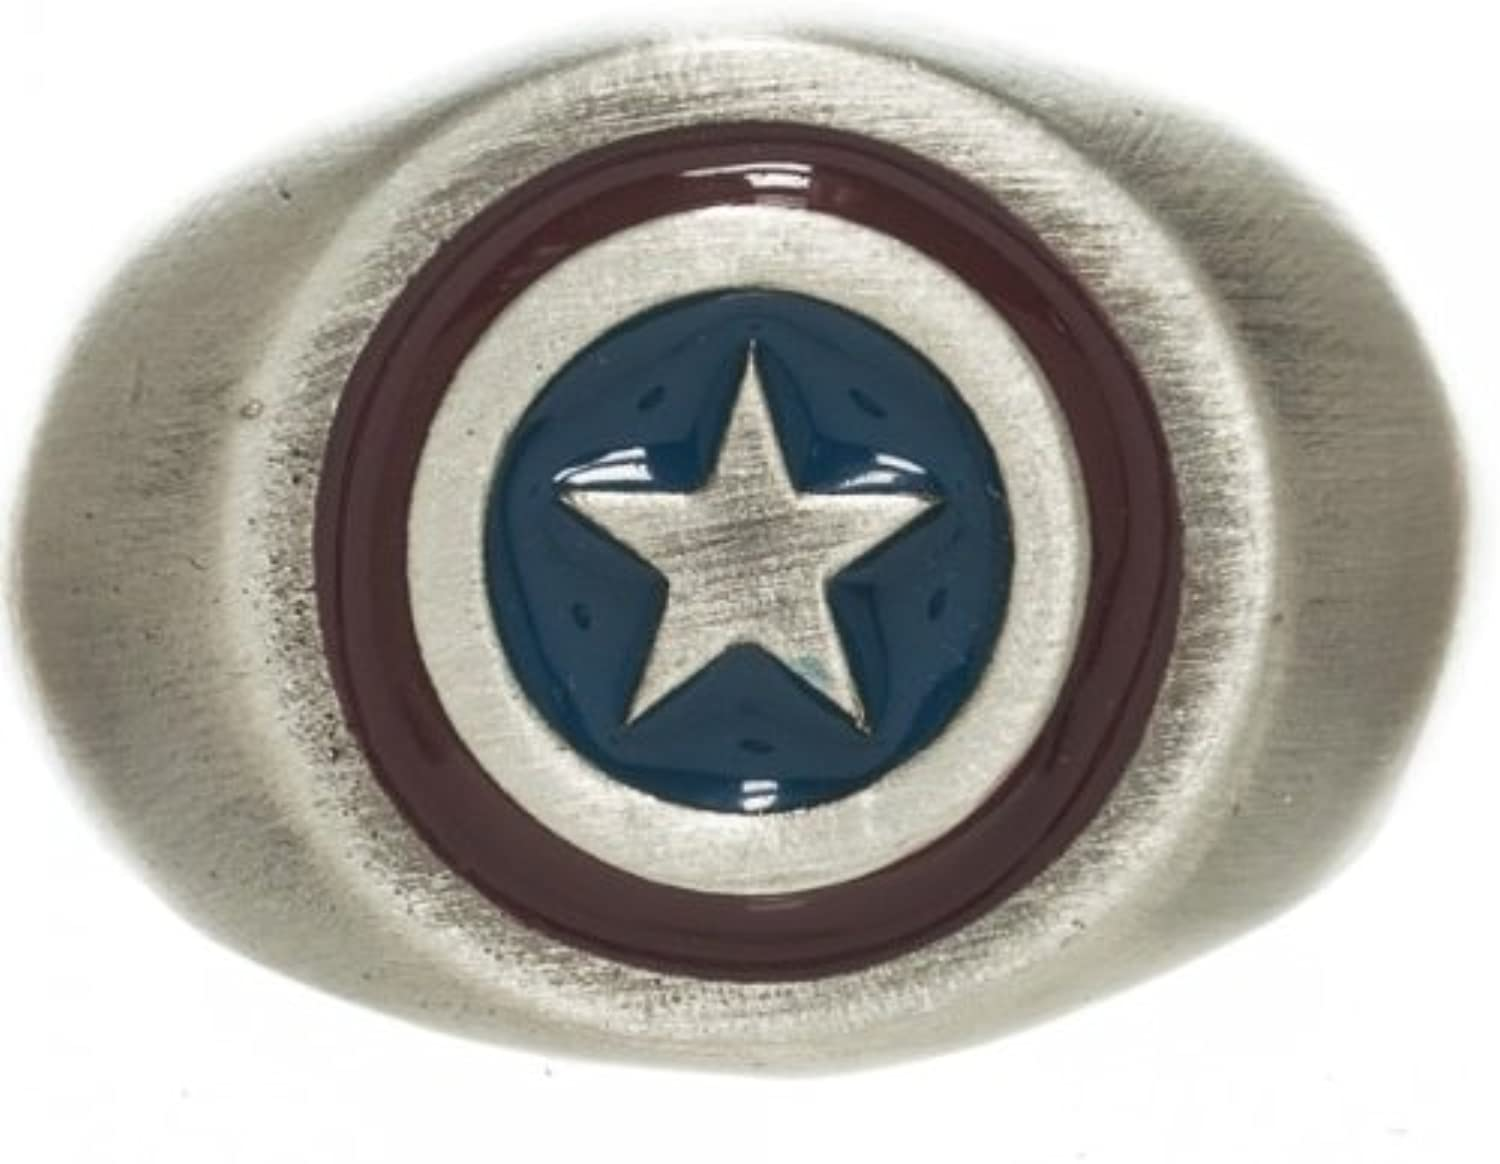 Marvel Captain America Brushed Nickel Ring 9.5